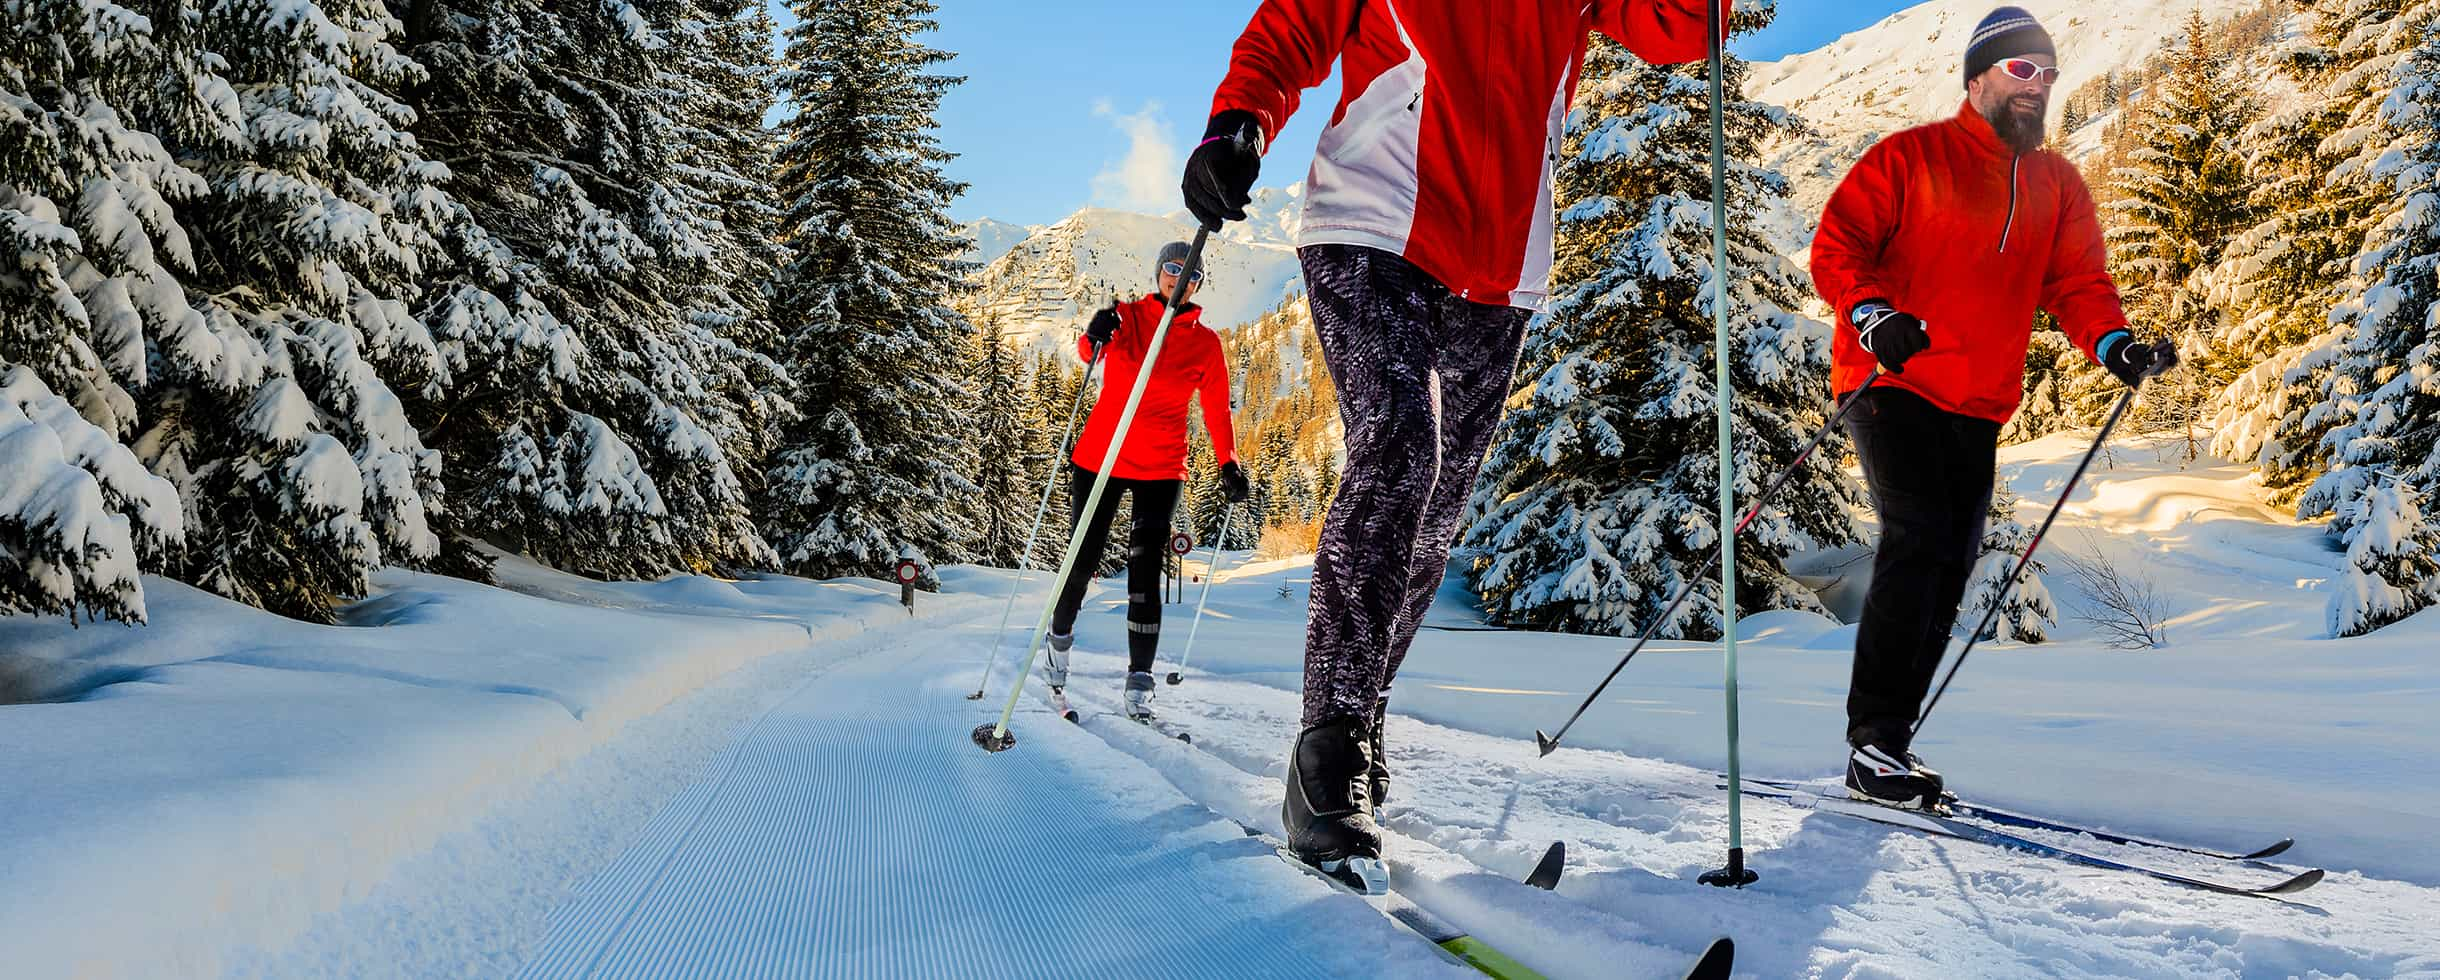 Cross country skiing - Top Activity near Boone, NC